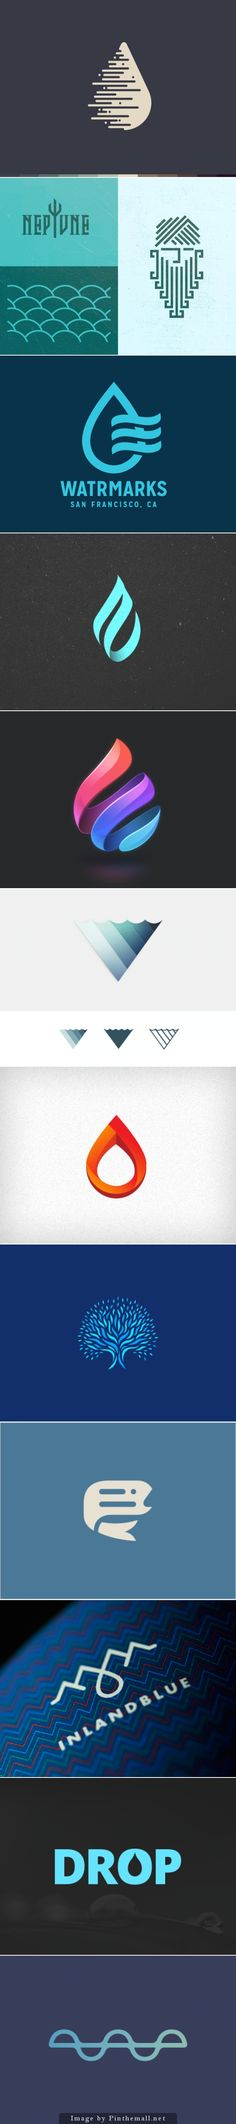 20 Beautiful Water Inspired Logos